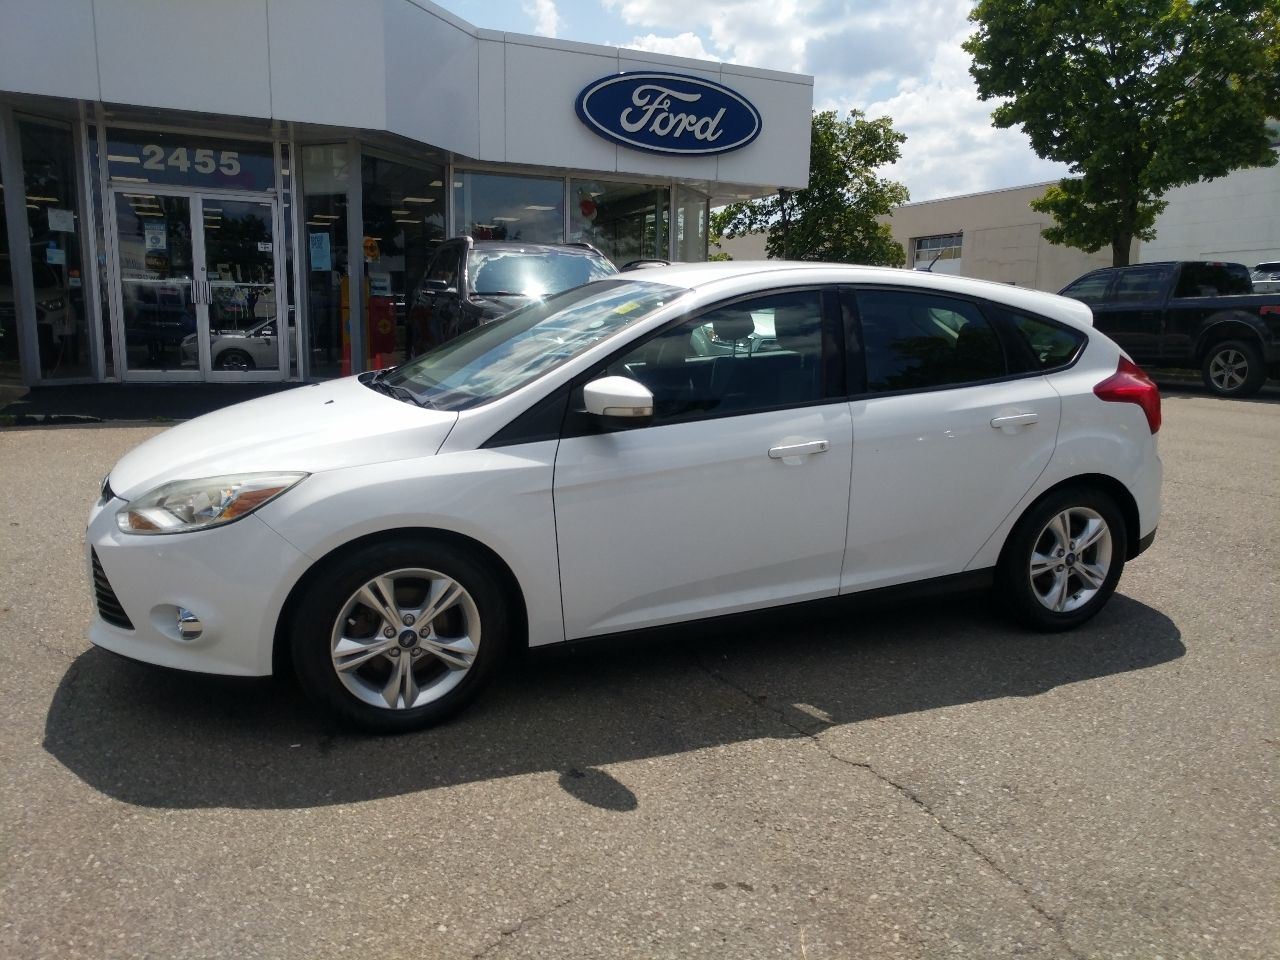 2012 Ford Focus Image